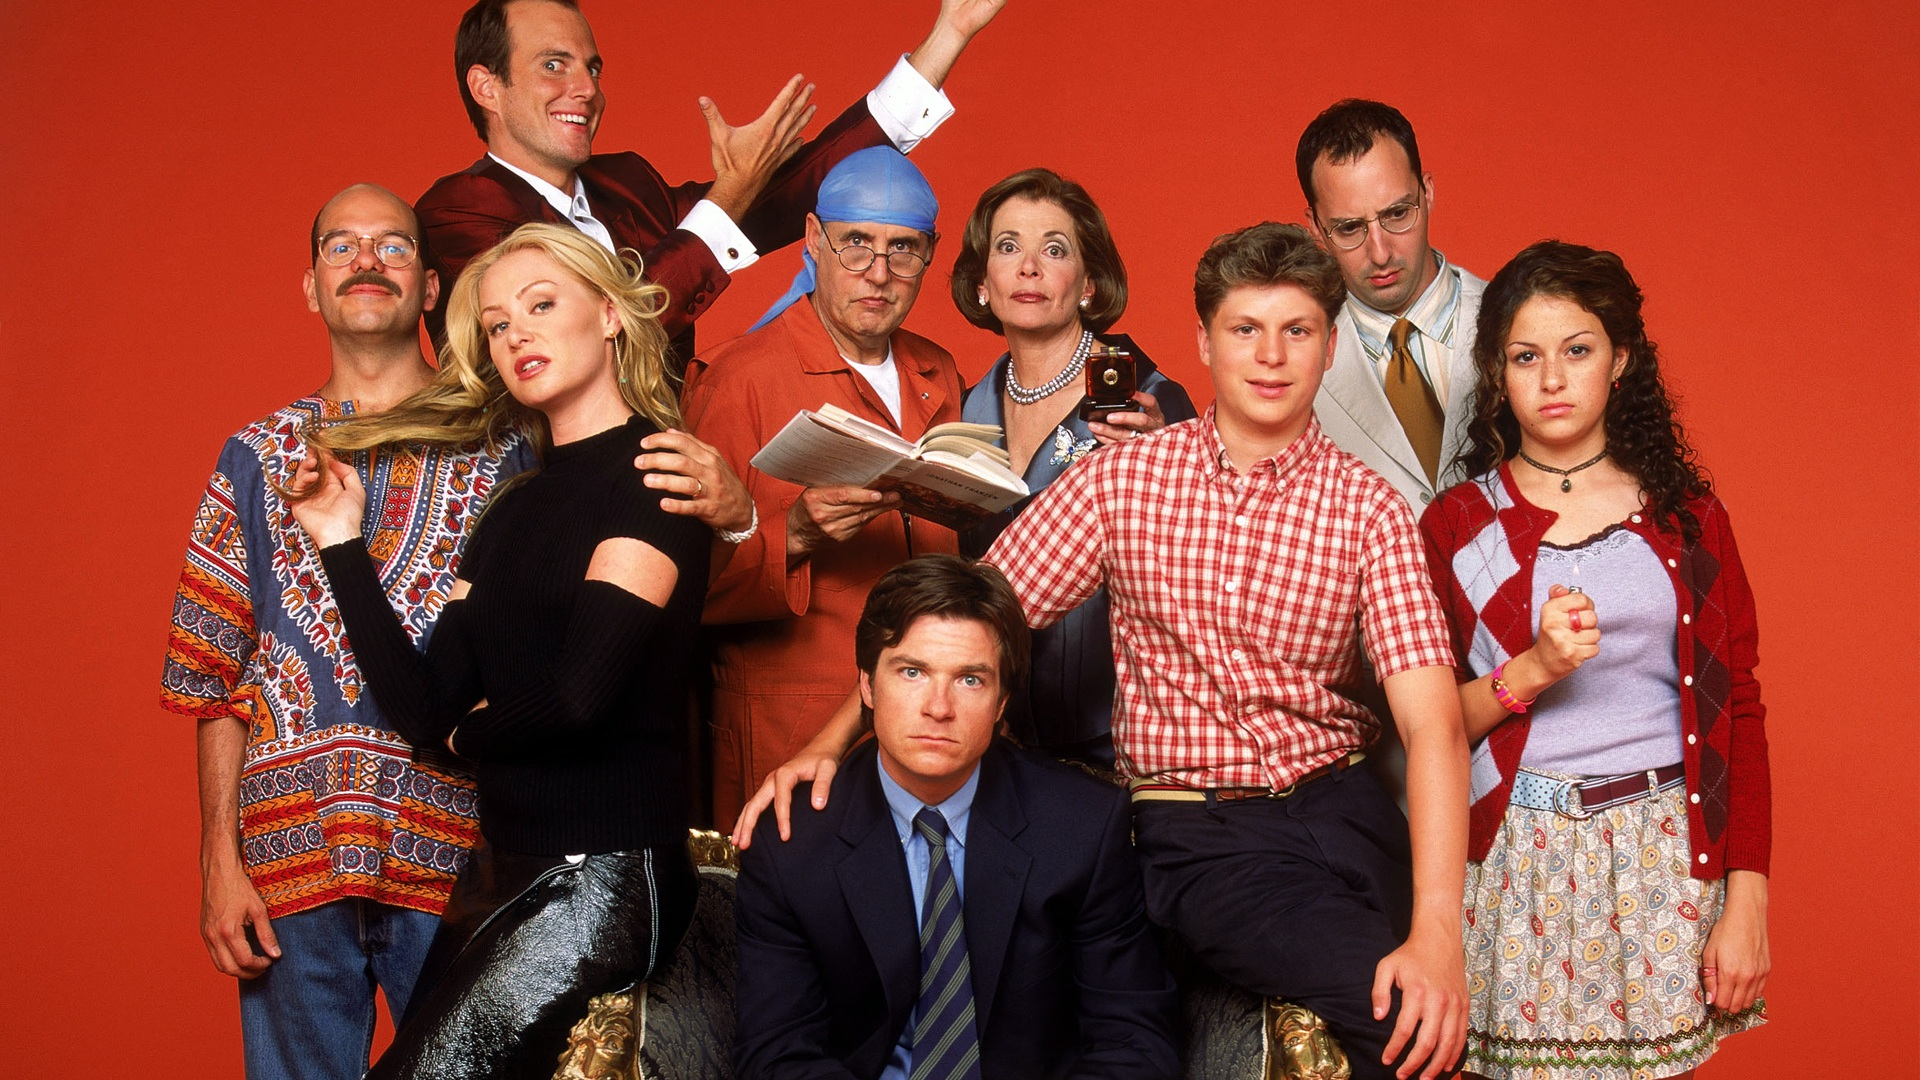 What's special about Arrested Development?